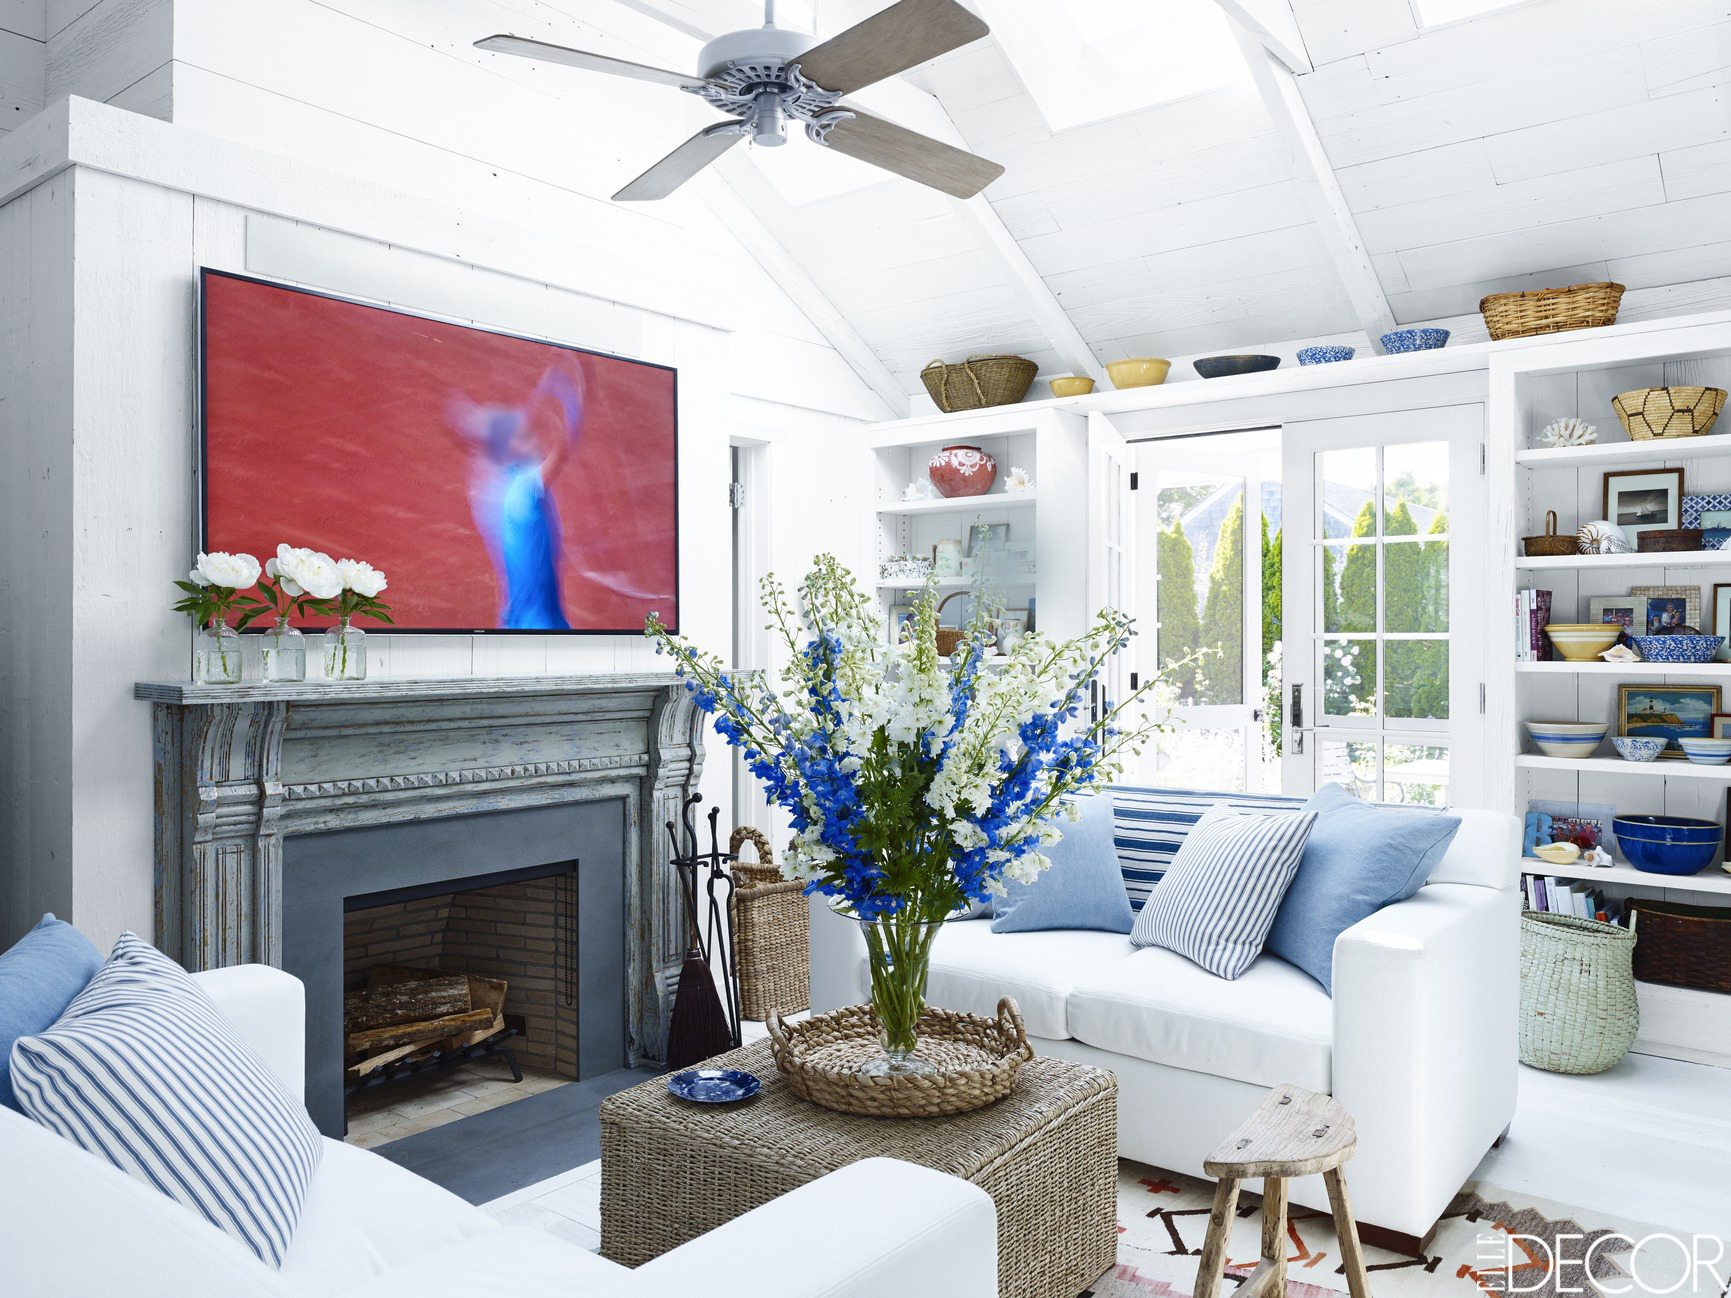 HOUSE TOUR: From The Mountains To The Beach, A Fashion